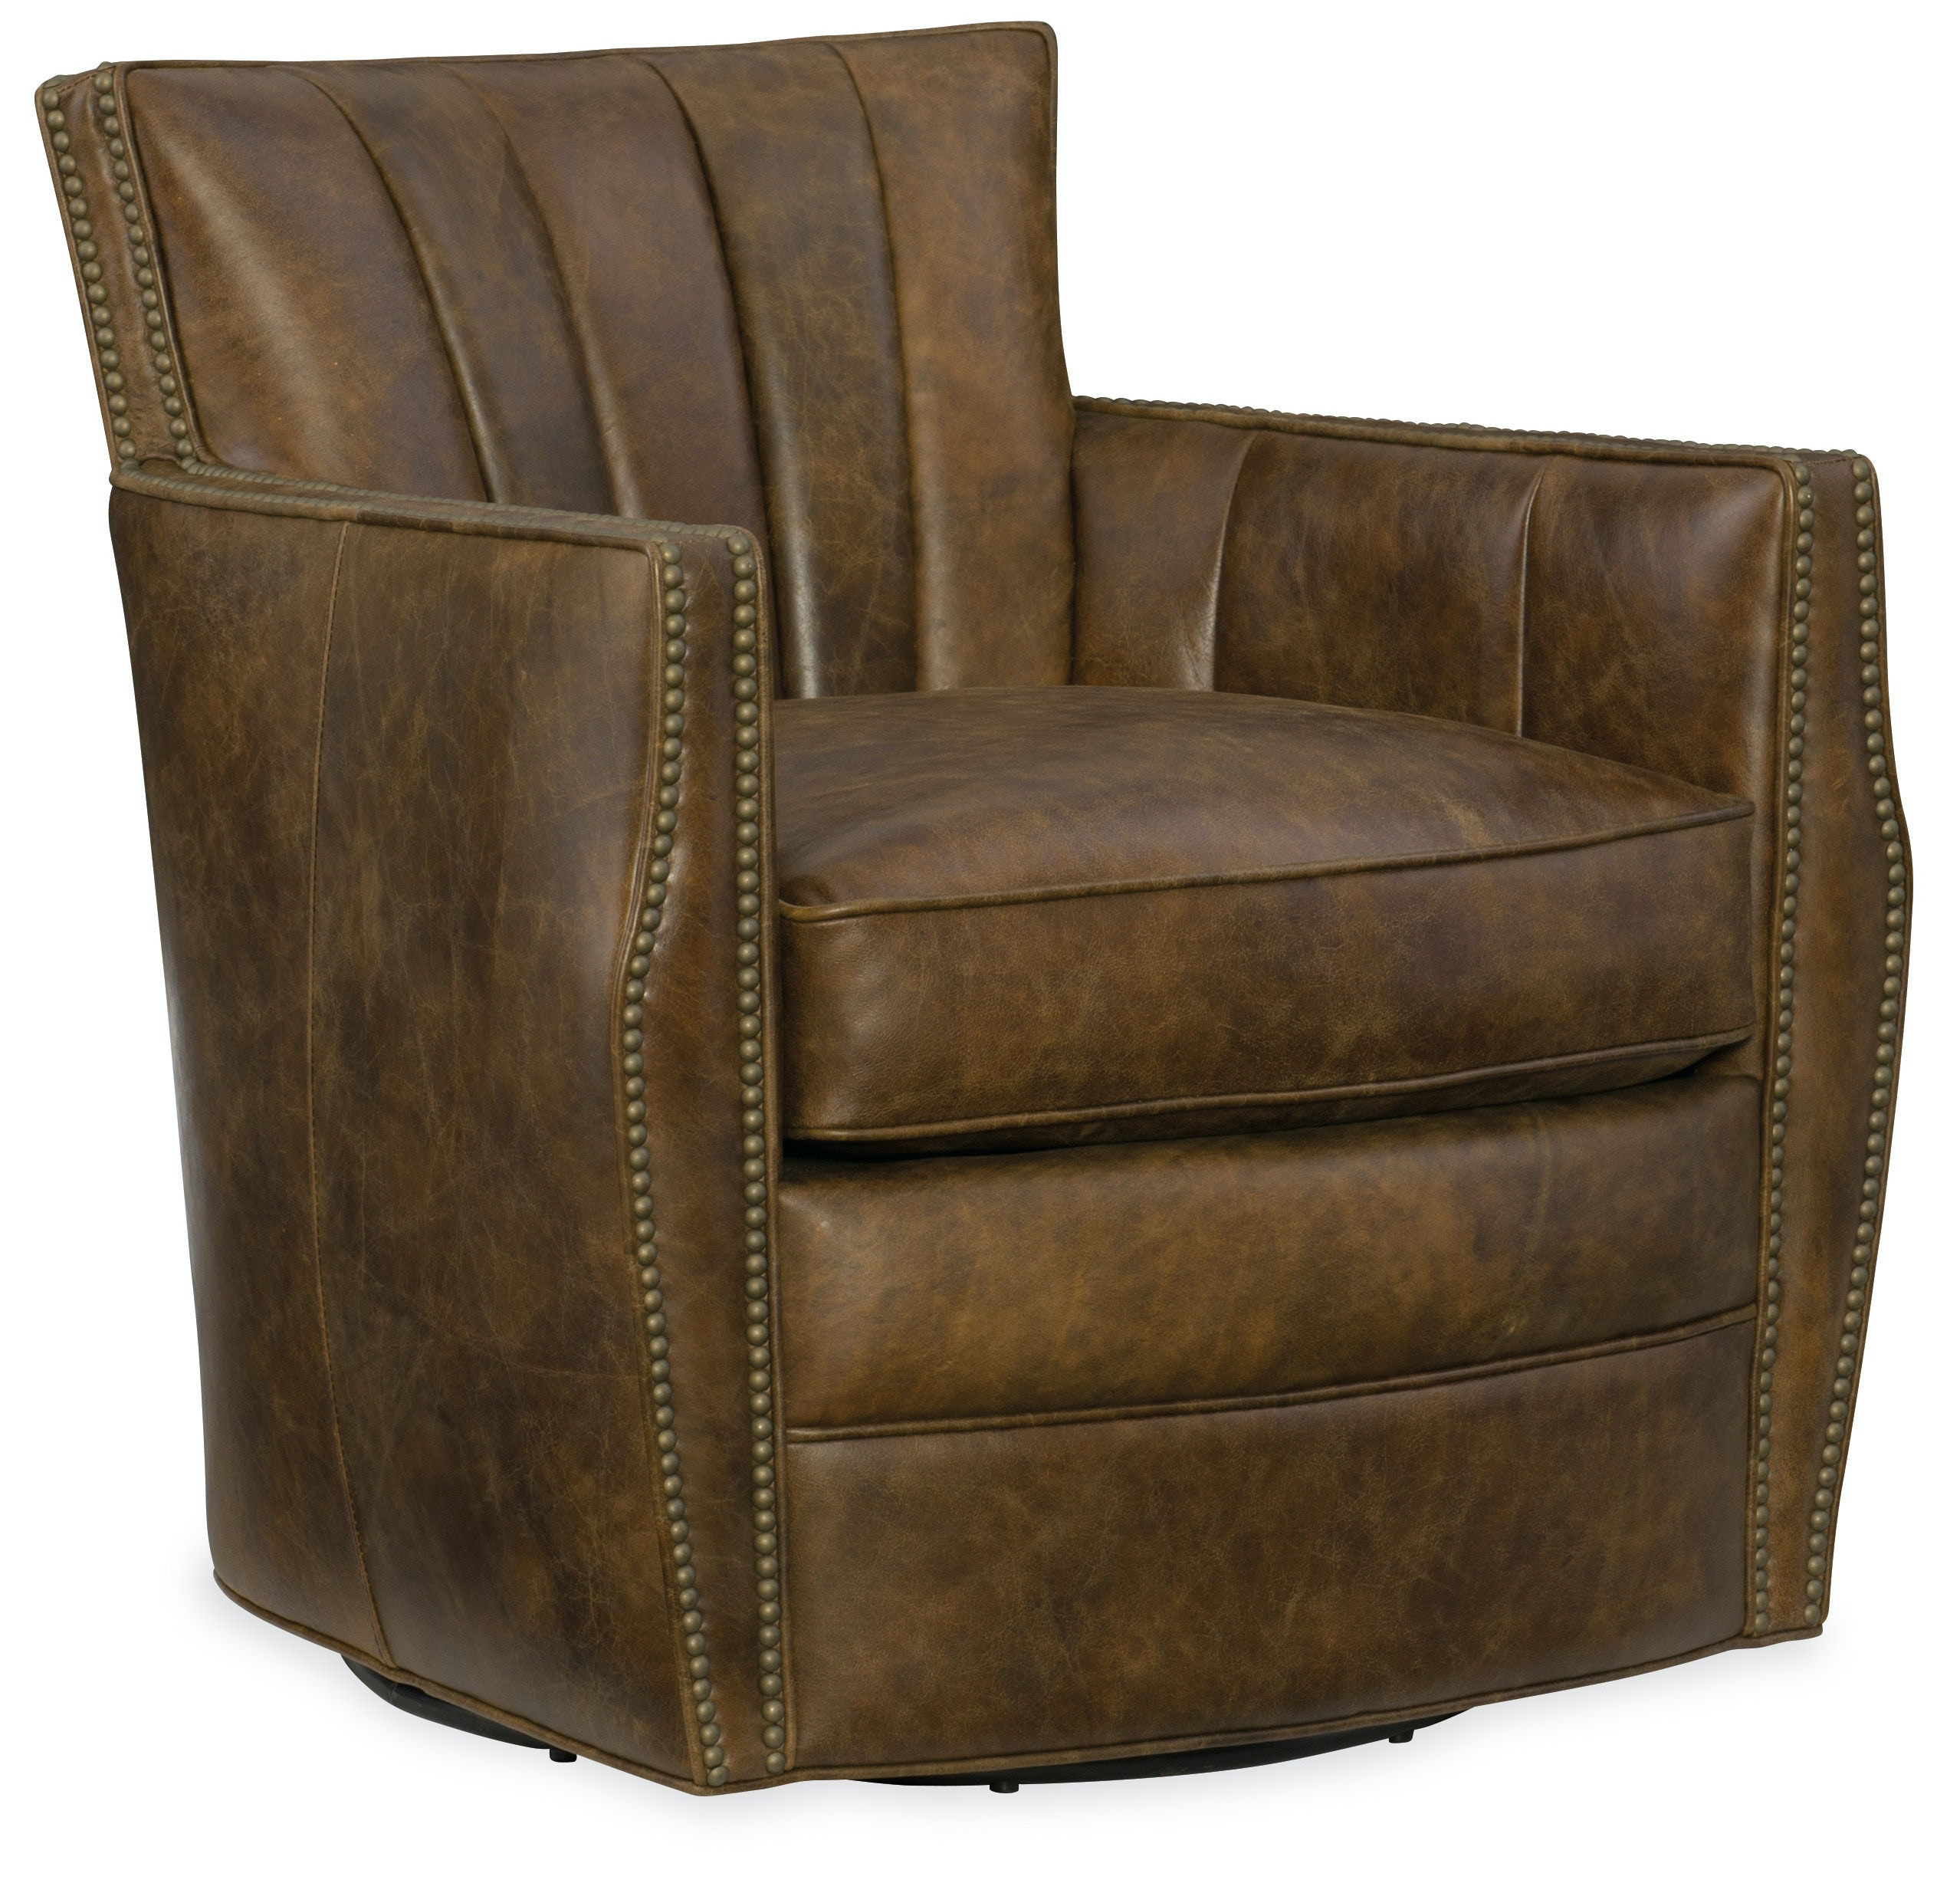 Gentil Hooker Furniture Carson Swivel Club Chair CC492 SW 085